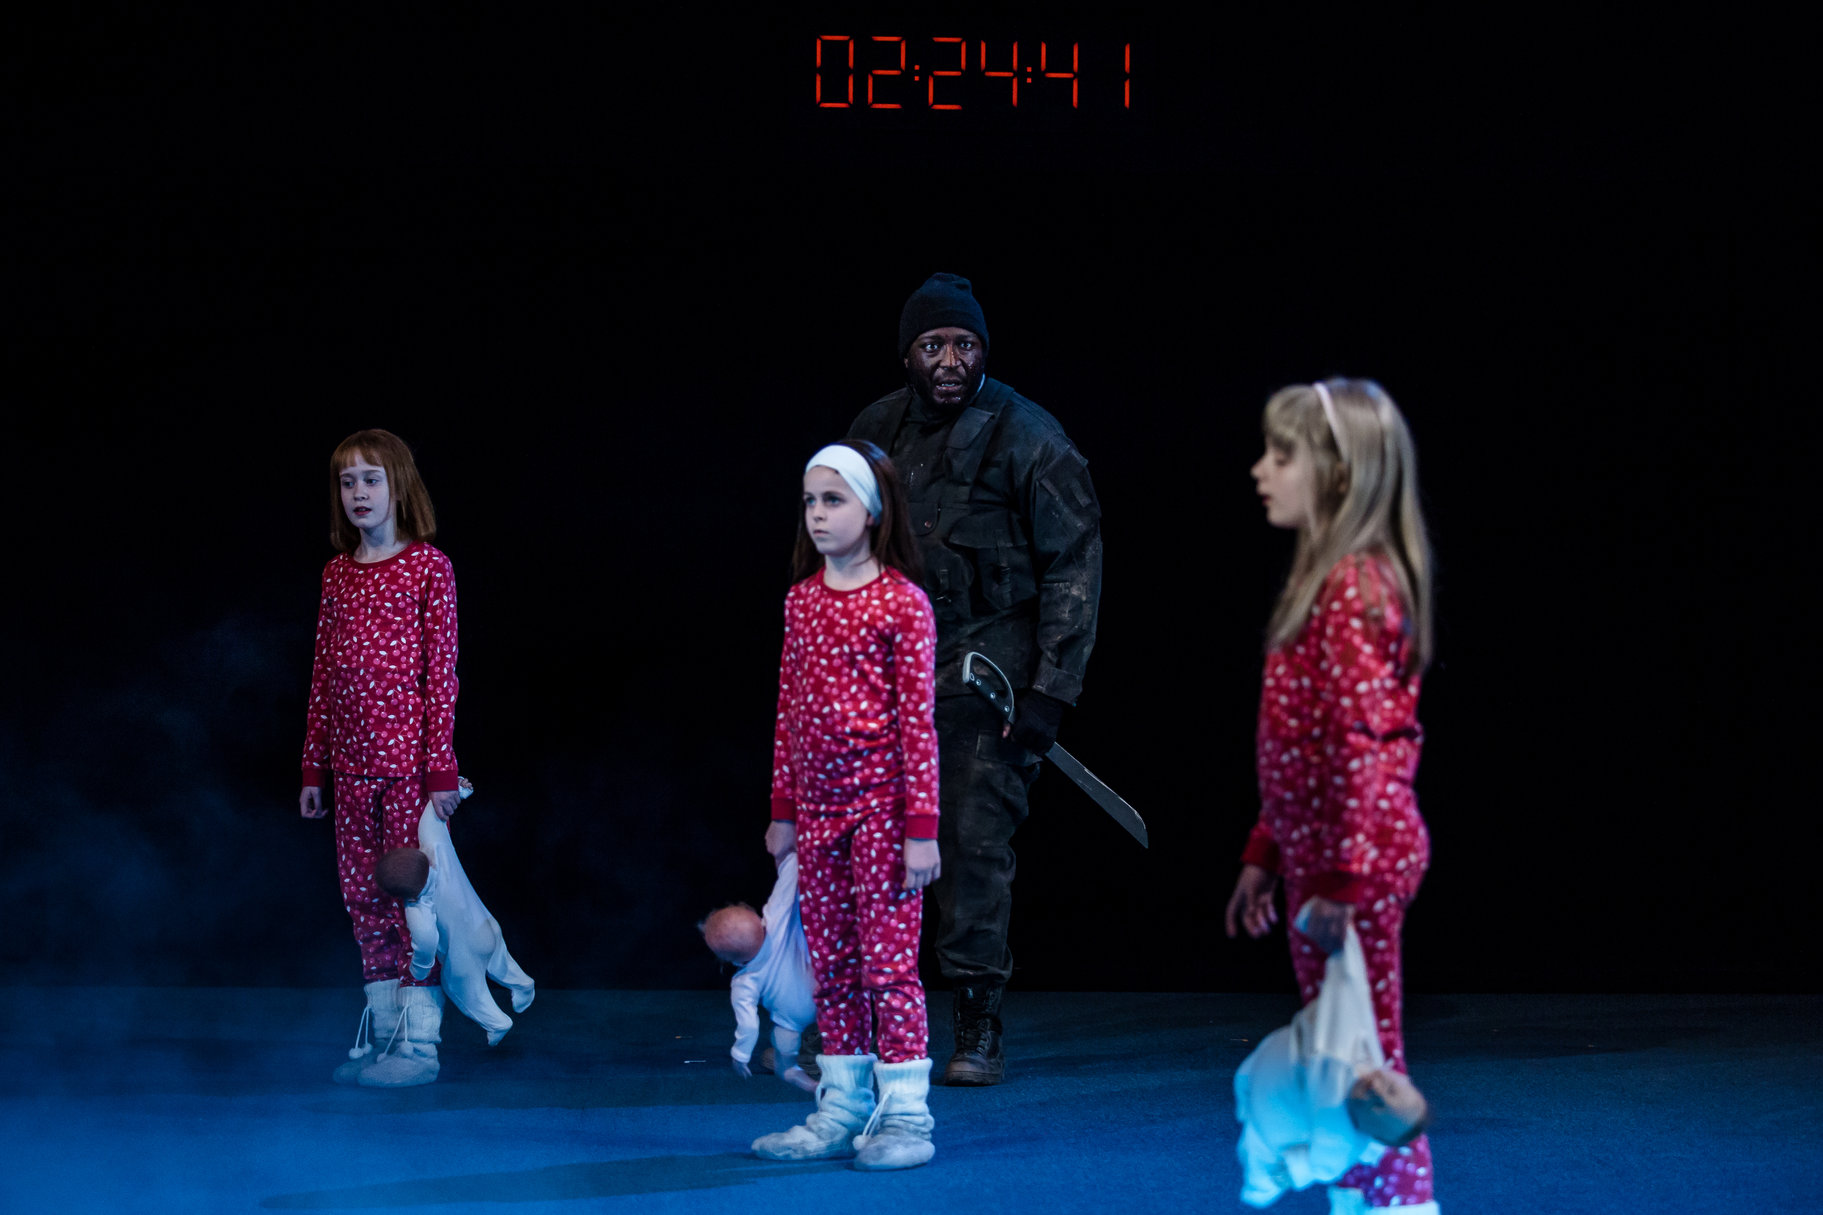 Banquo is frightened by the witches, who are three young girls in red pyjamas, carrying dolls.